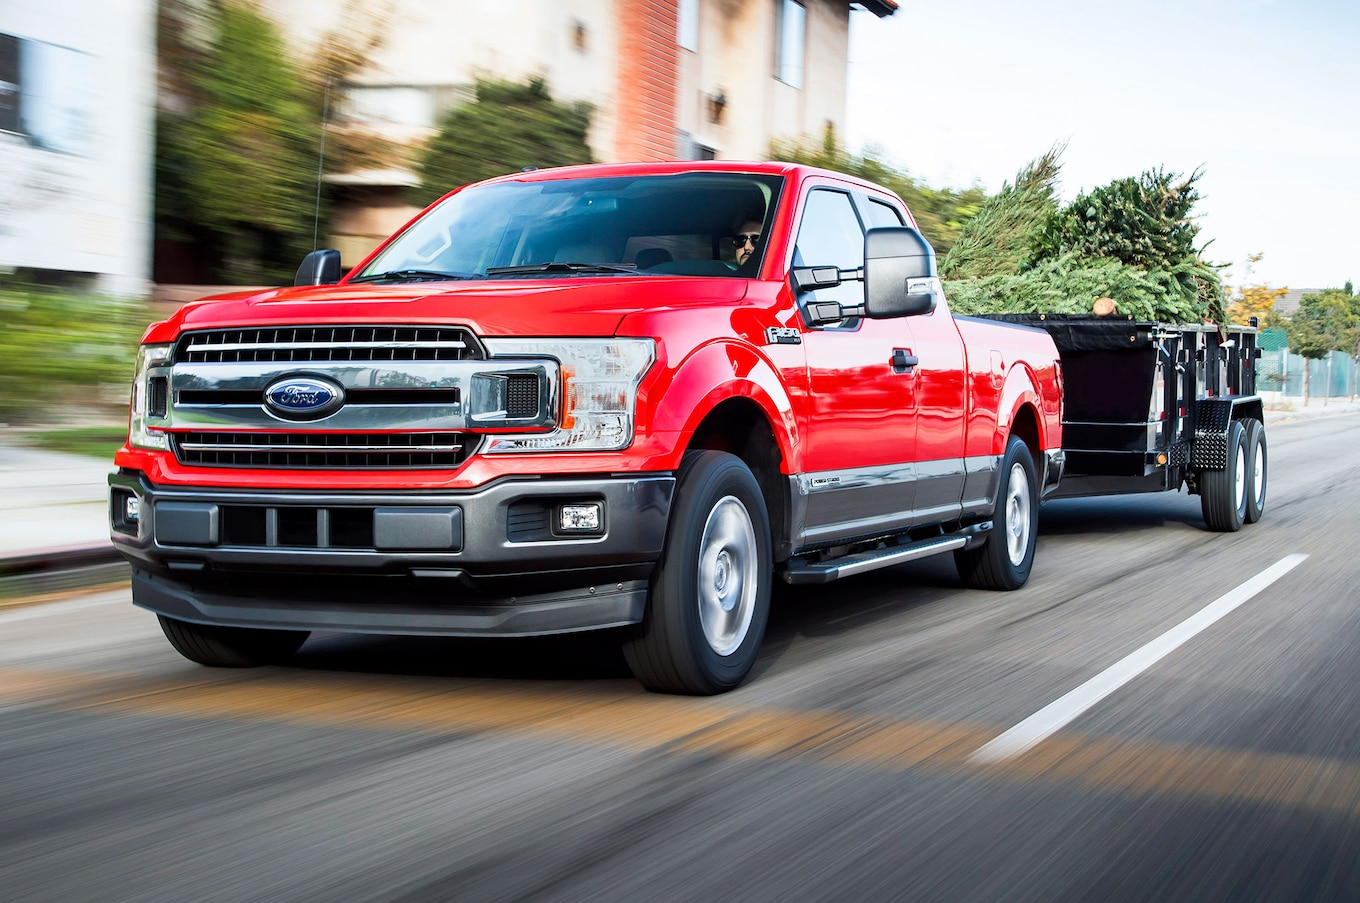 hight resolution of 2018 ford f 150 power stroke diesel first look lionhearted motor trend